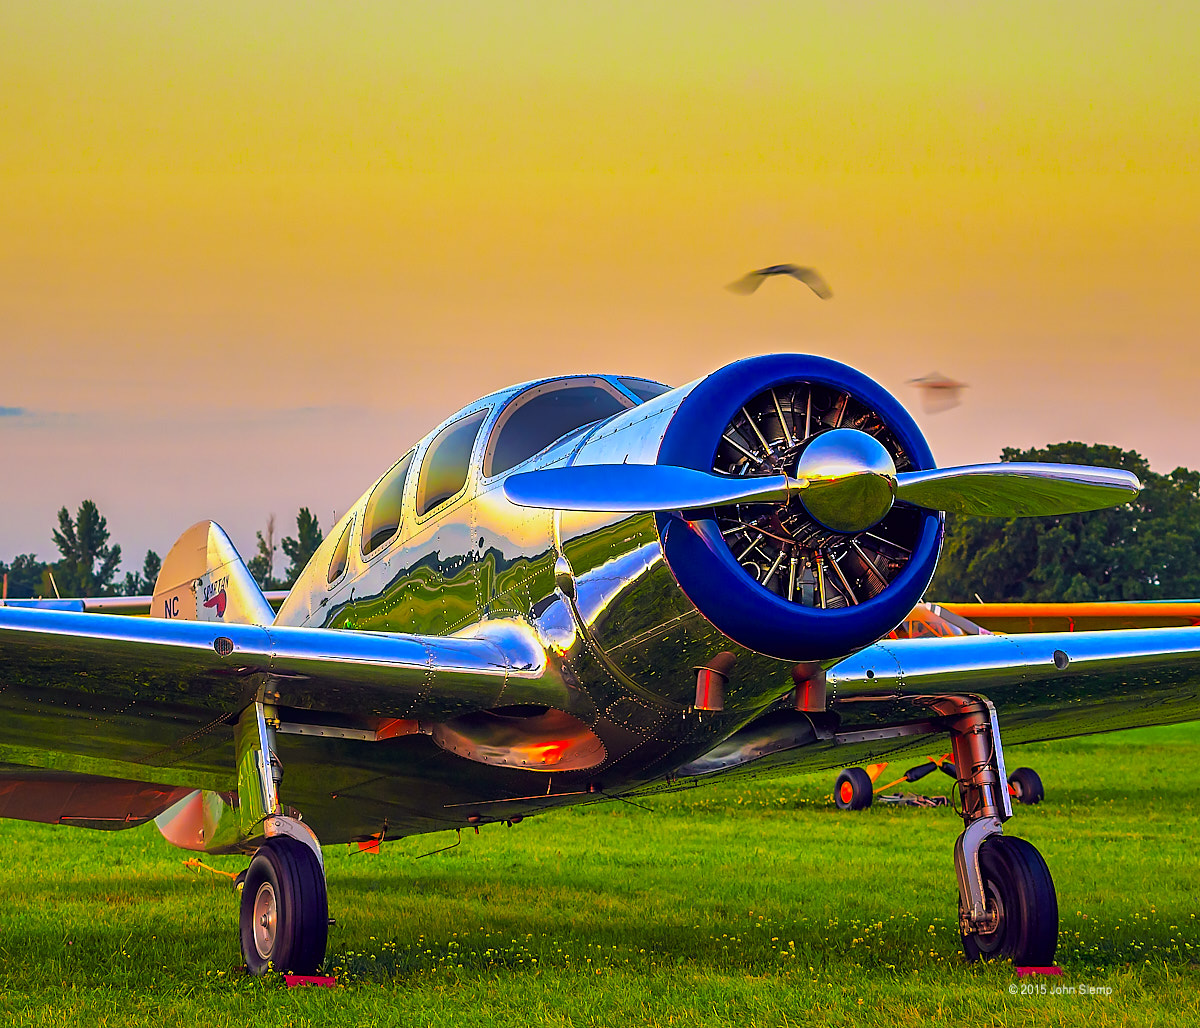 A lovely Spartan Executive photographed at dawn during AirVenture 2015 in Oshkosh, Wisconsin.